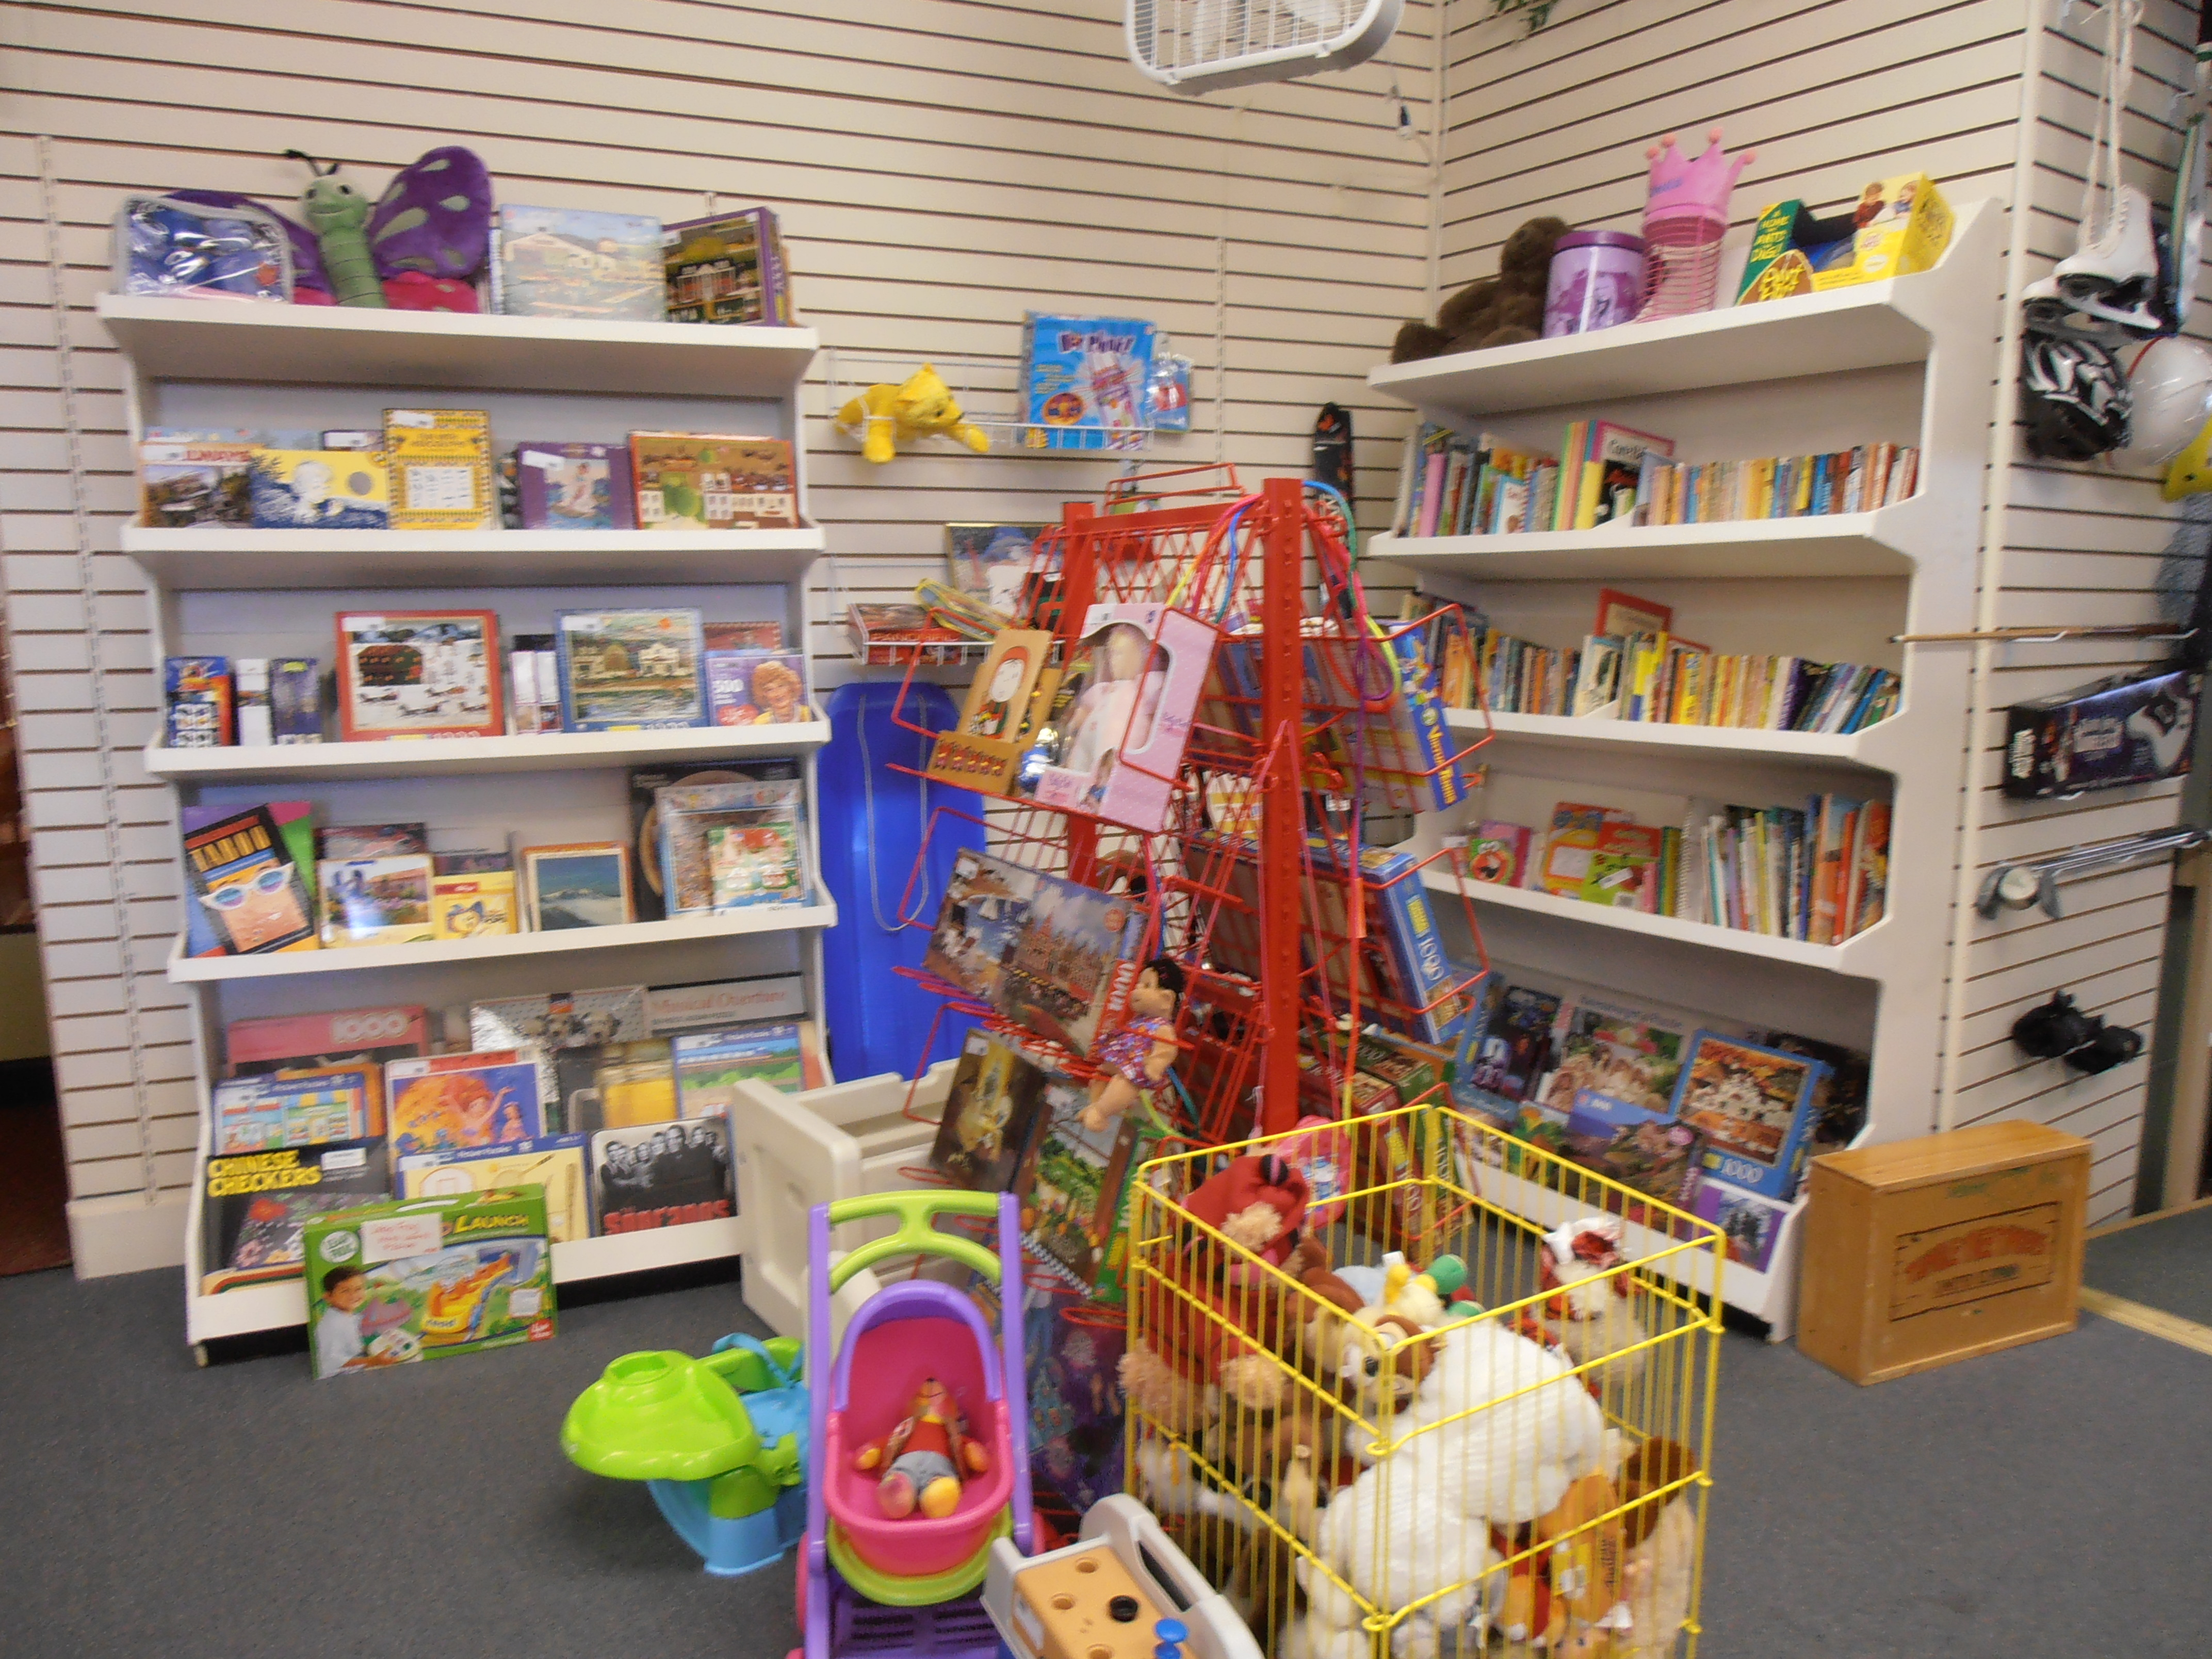 The Arc Emporium kids books and toys